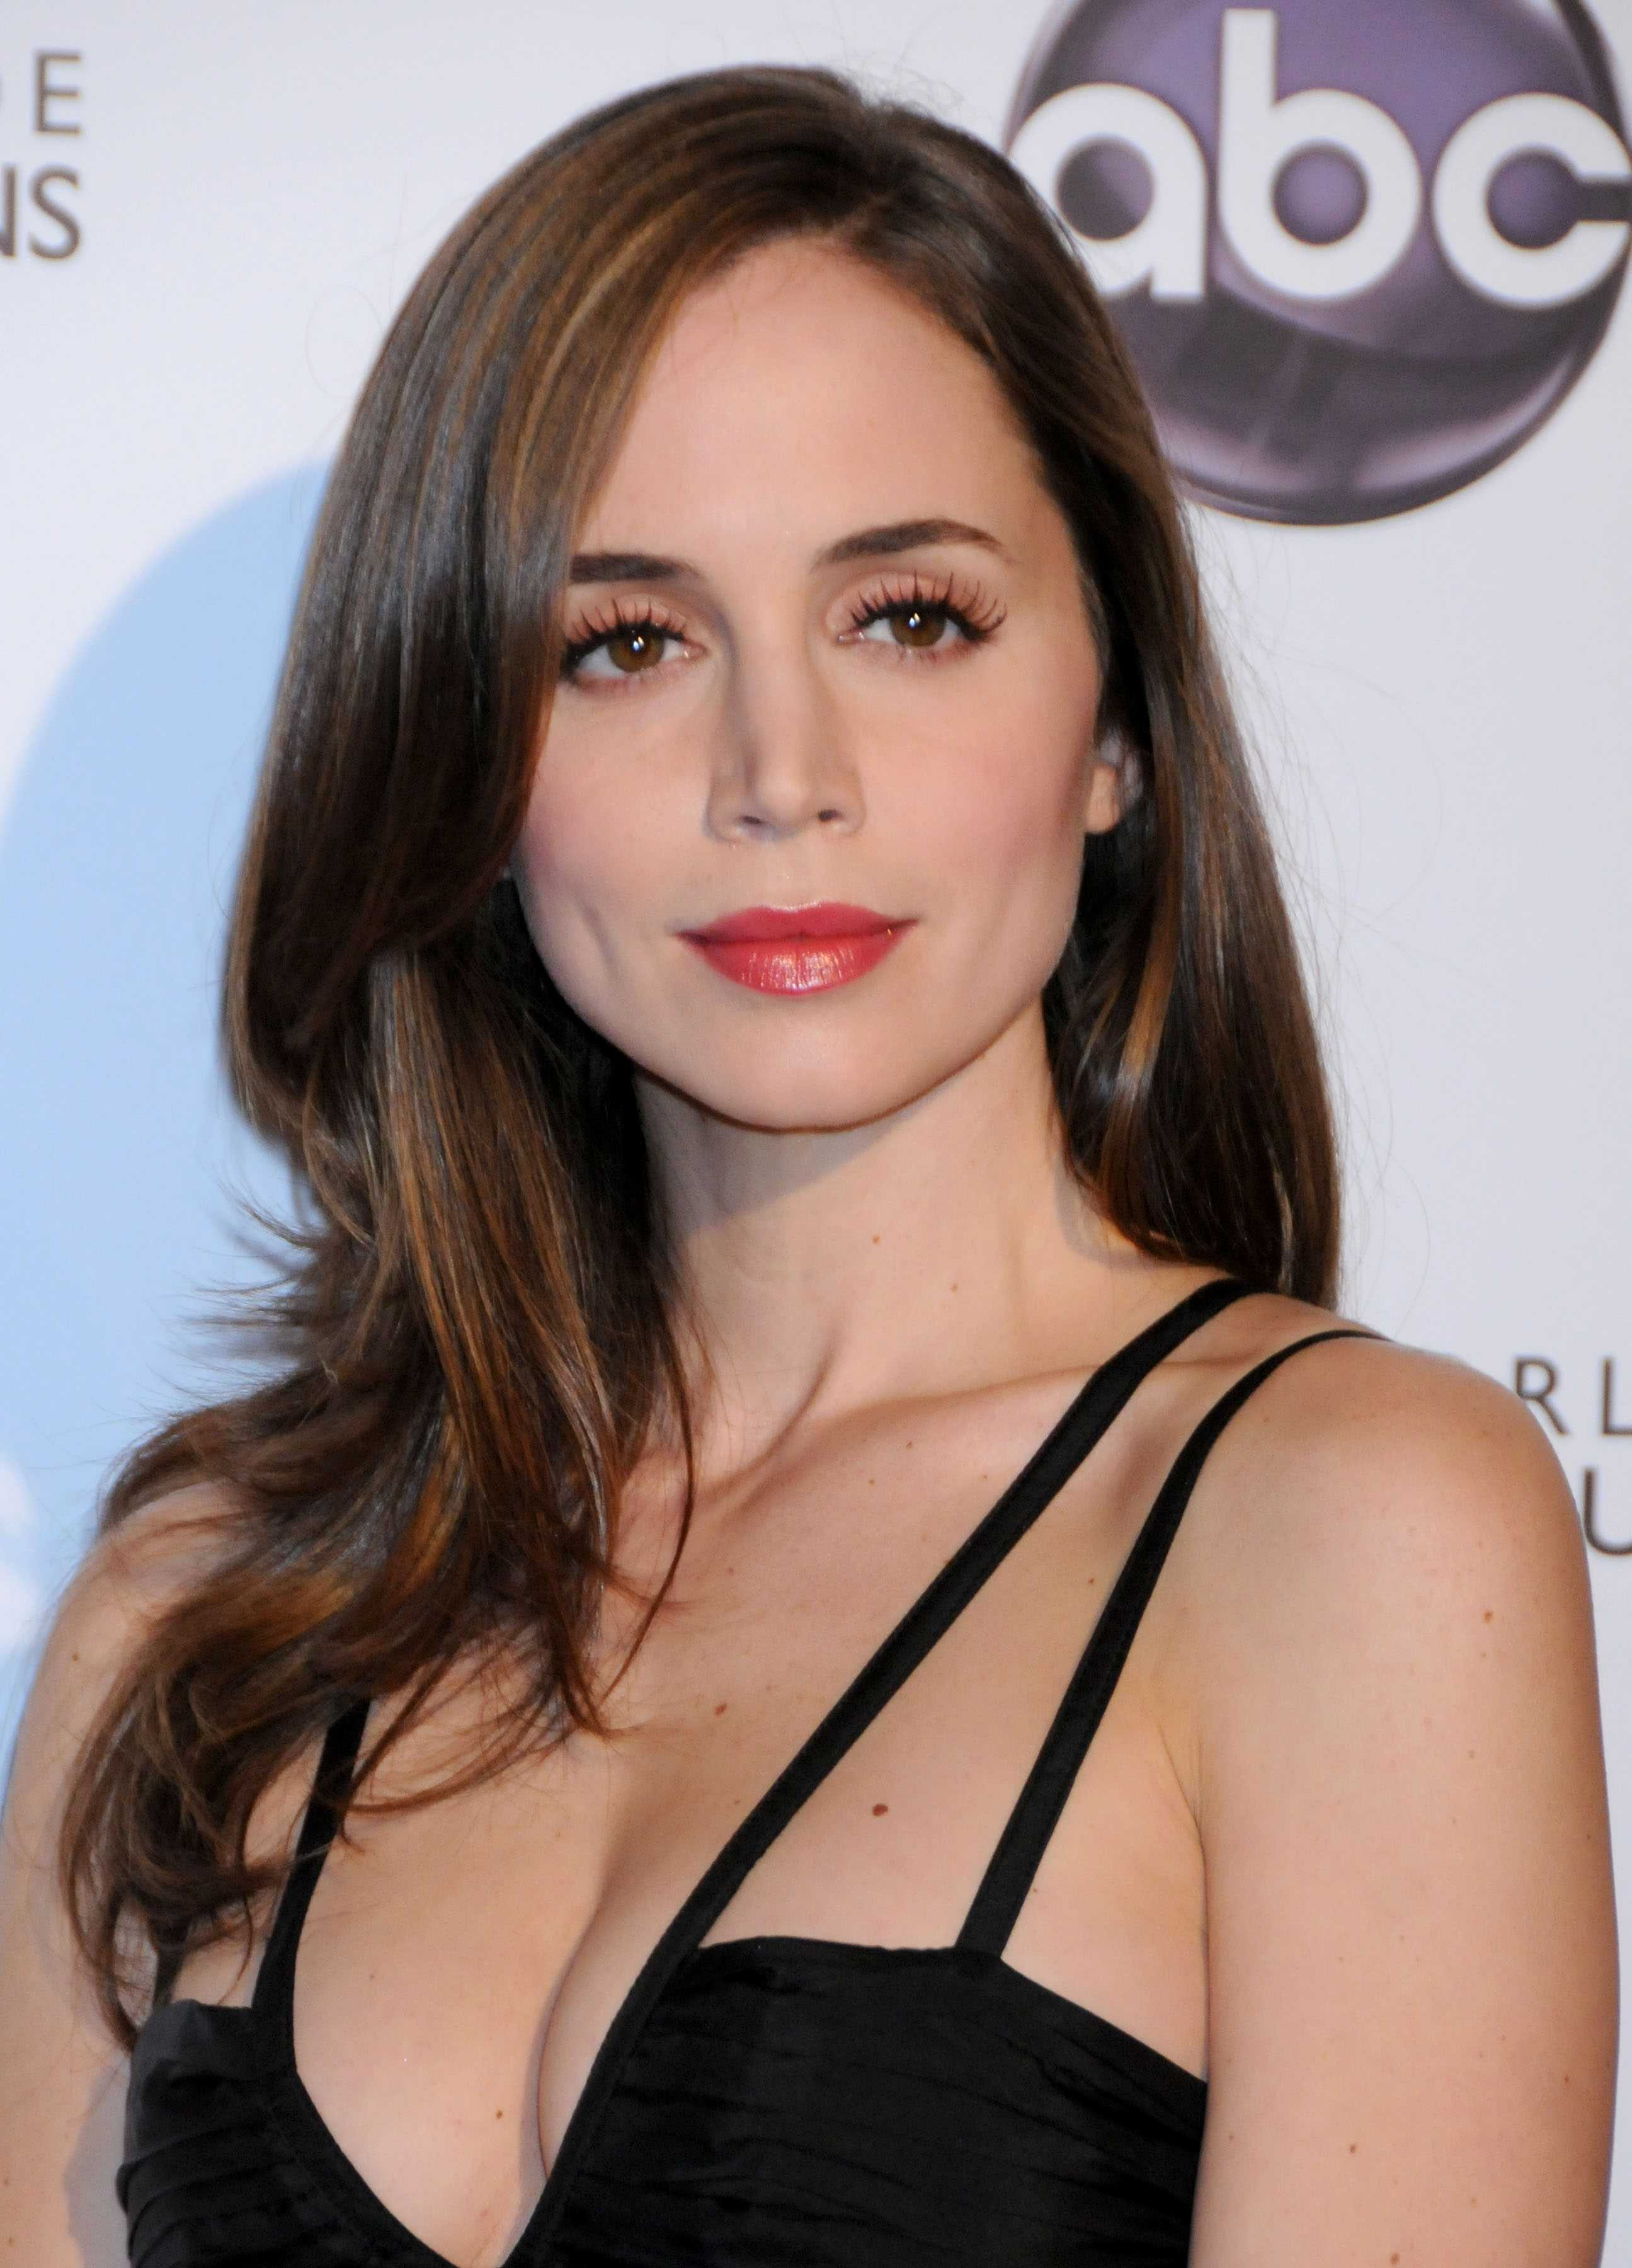 Eliza Dushku screenshots, images and pictures - Giant Bomb